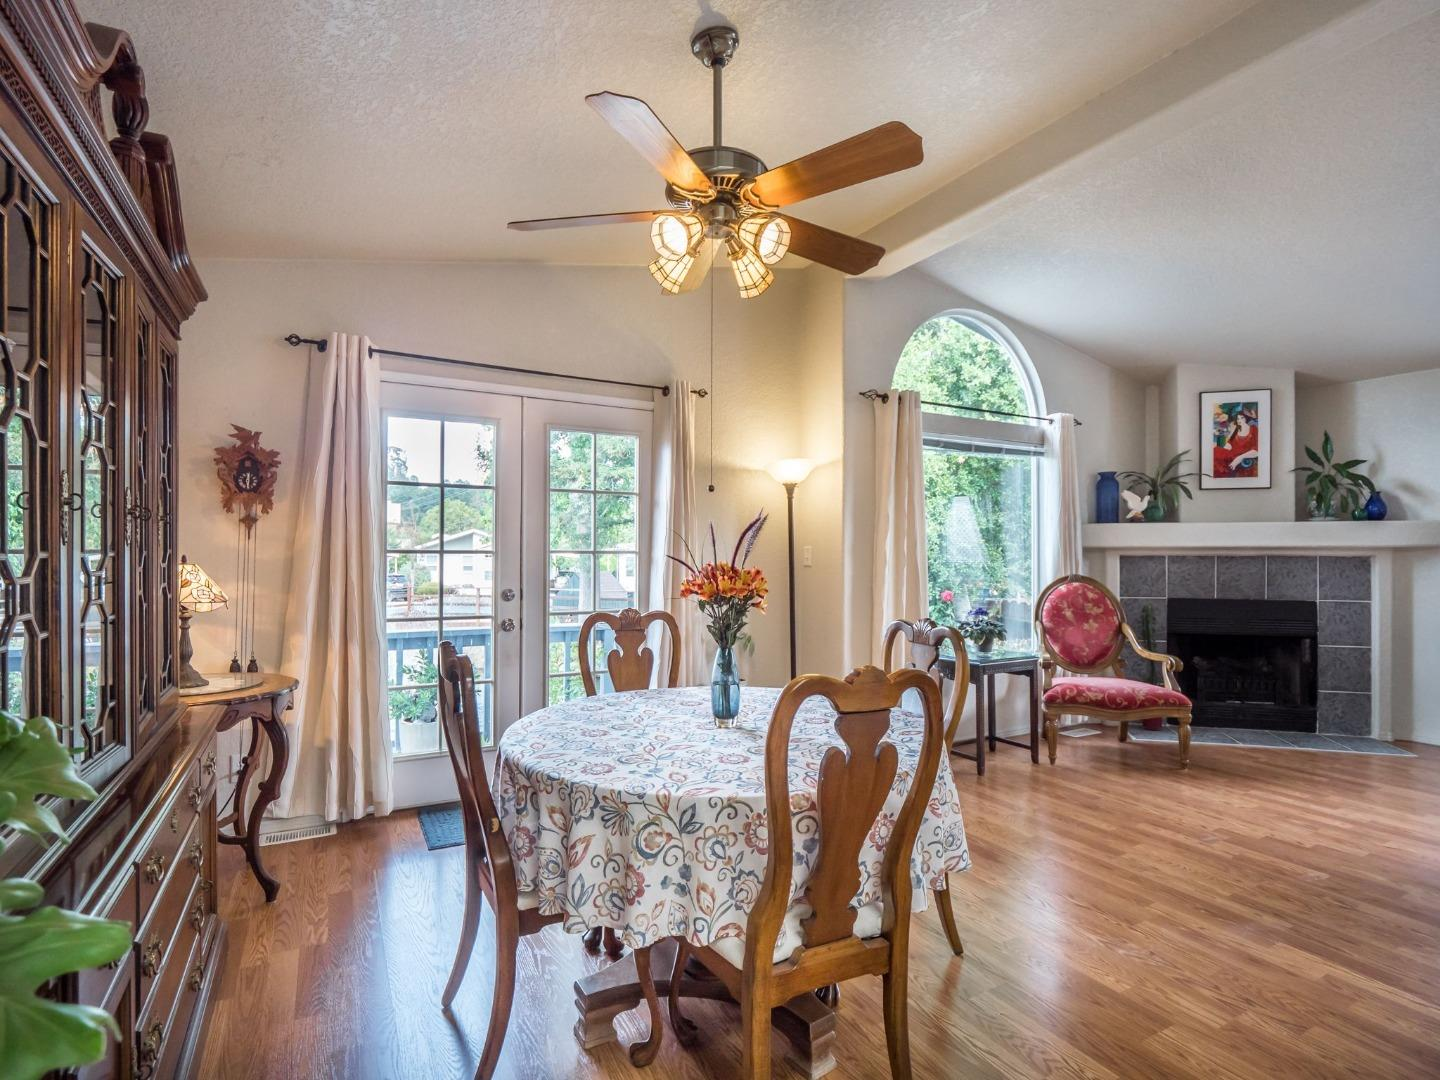 444 Whispering Pines Dr #200, Scotts Valley, CA 95066 - 3 ...